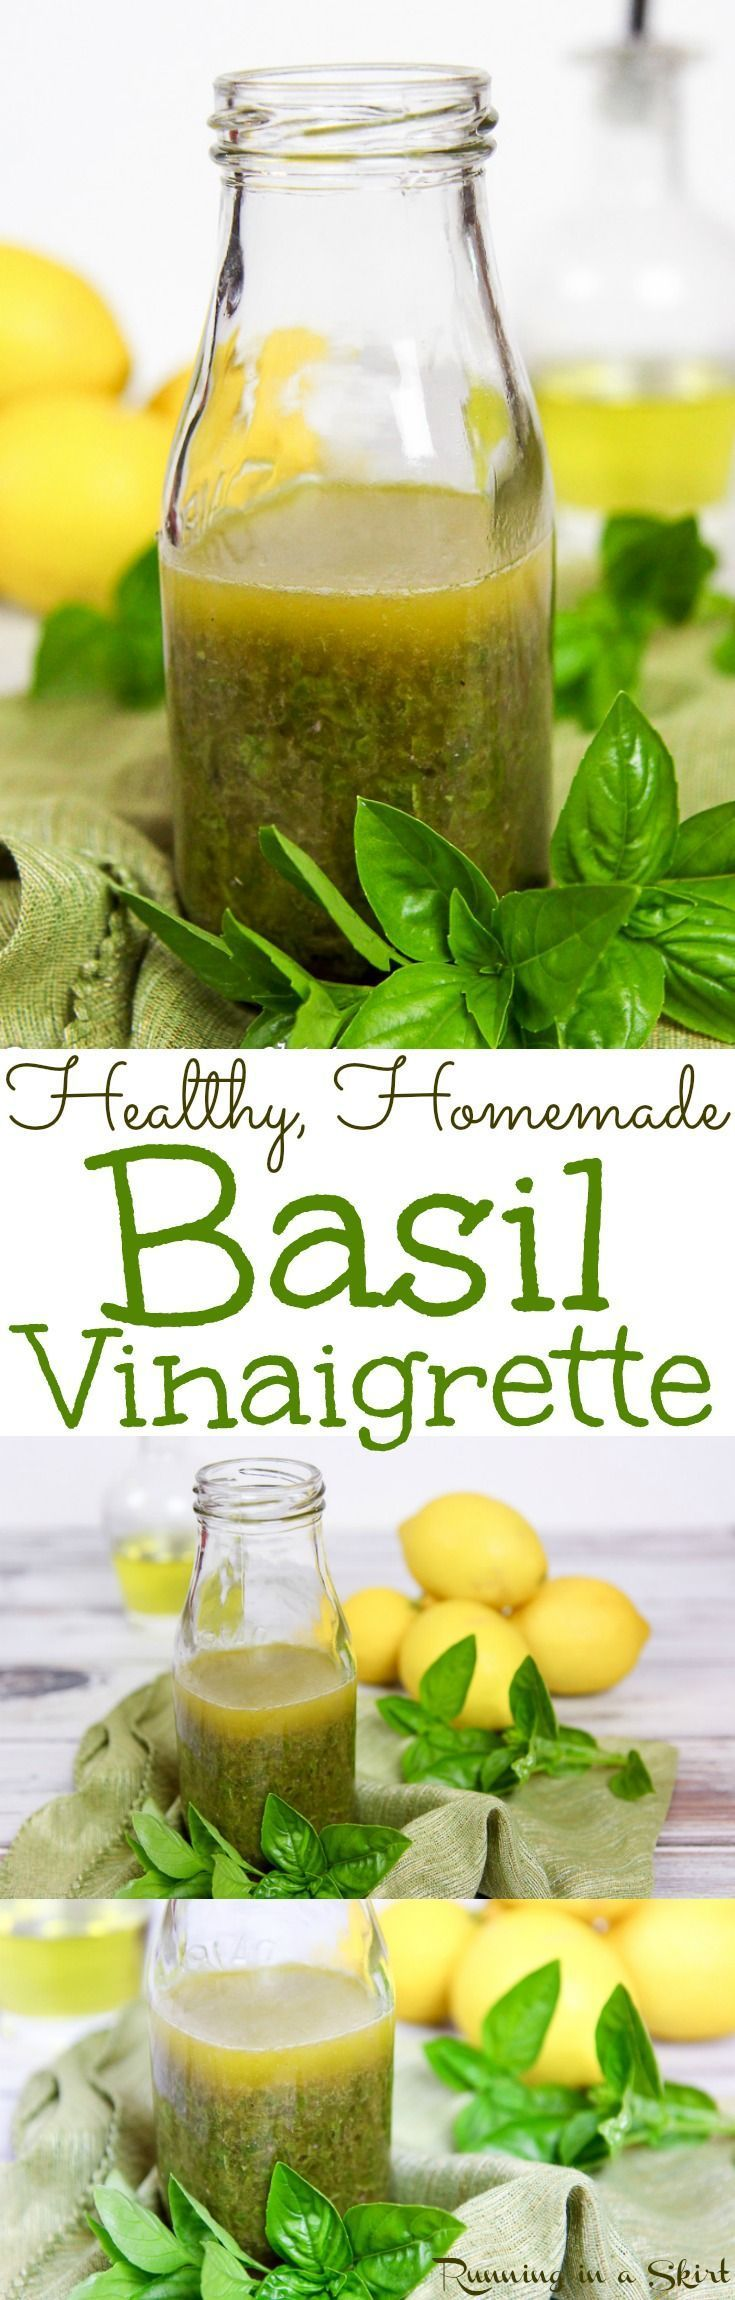 Healthy Fresh Lemon Basil Salad Dressing recipe. Homemade with only 5 ingredients! This simple vinaigrette recipe will be your go-to for salads, lunches, dinners or bowls with veggies like buddha bowls. Uses olive oils and red wines vinegar. Vegetarian, Vegan, Gluten Free/ Running in a Skirt